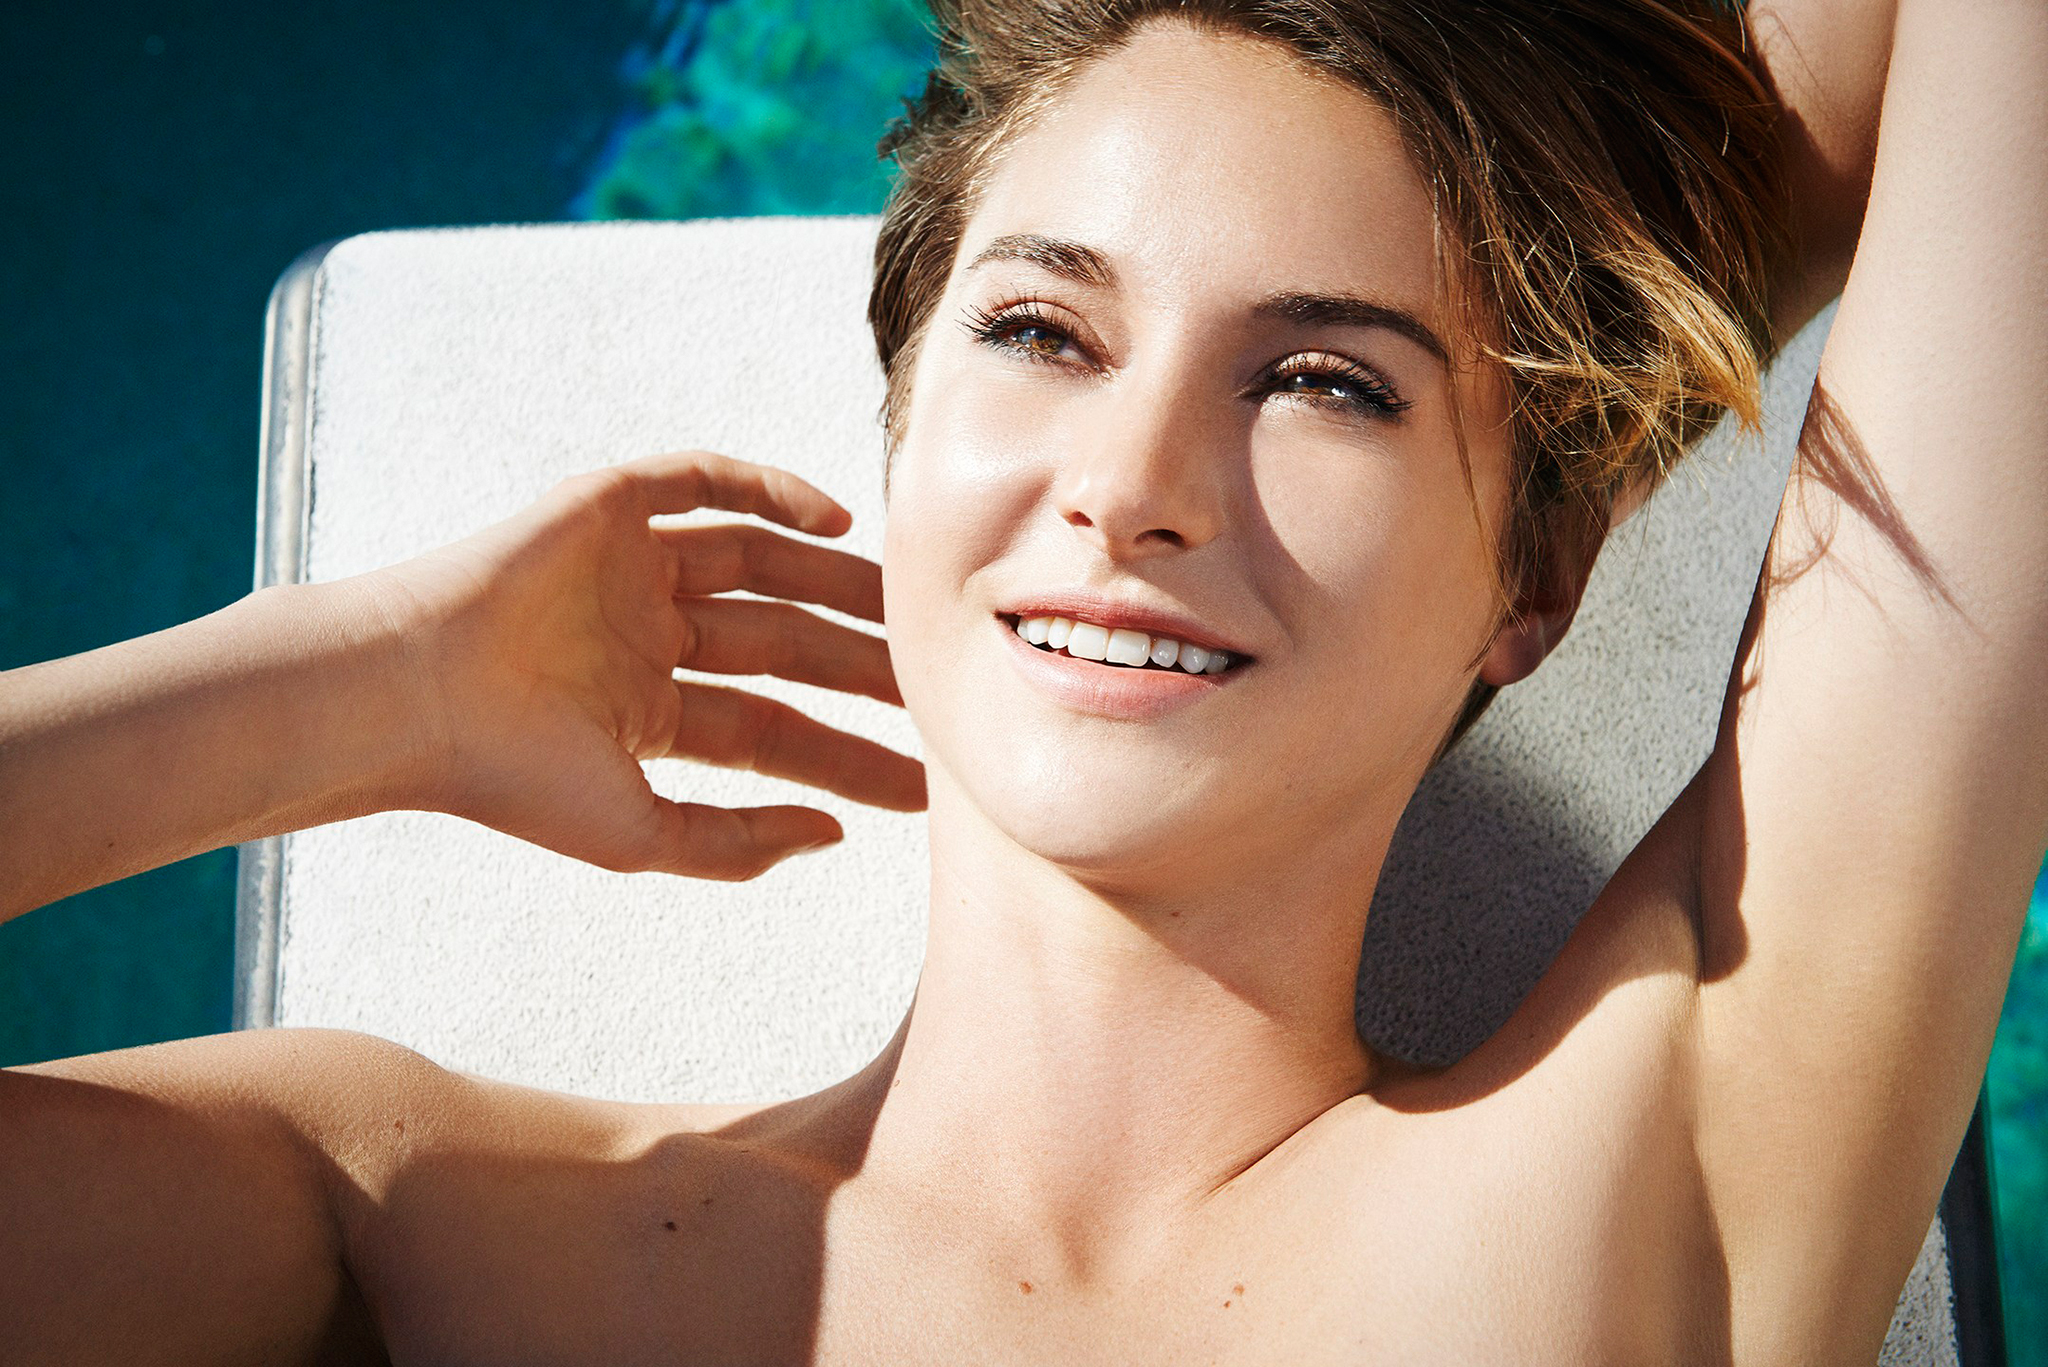 Shailene Woodley sunny - Shailene Woodley Net Worth, Movies, Family, Private Life, Pictures and Wallpapers